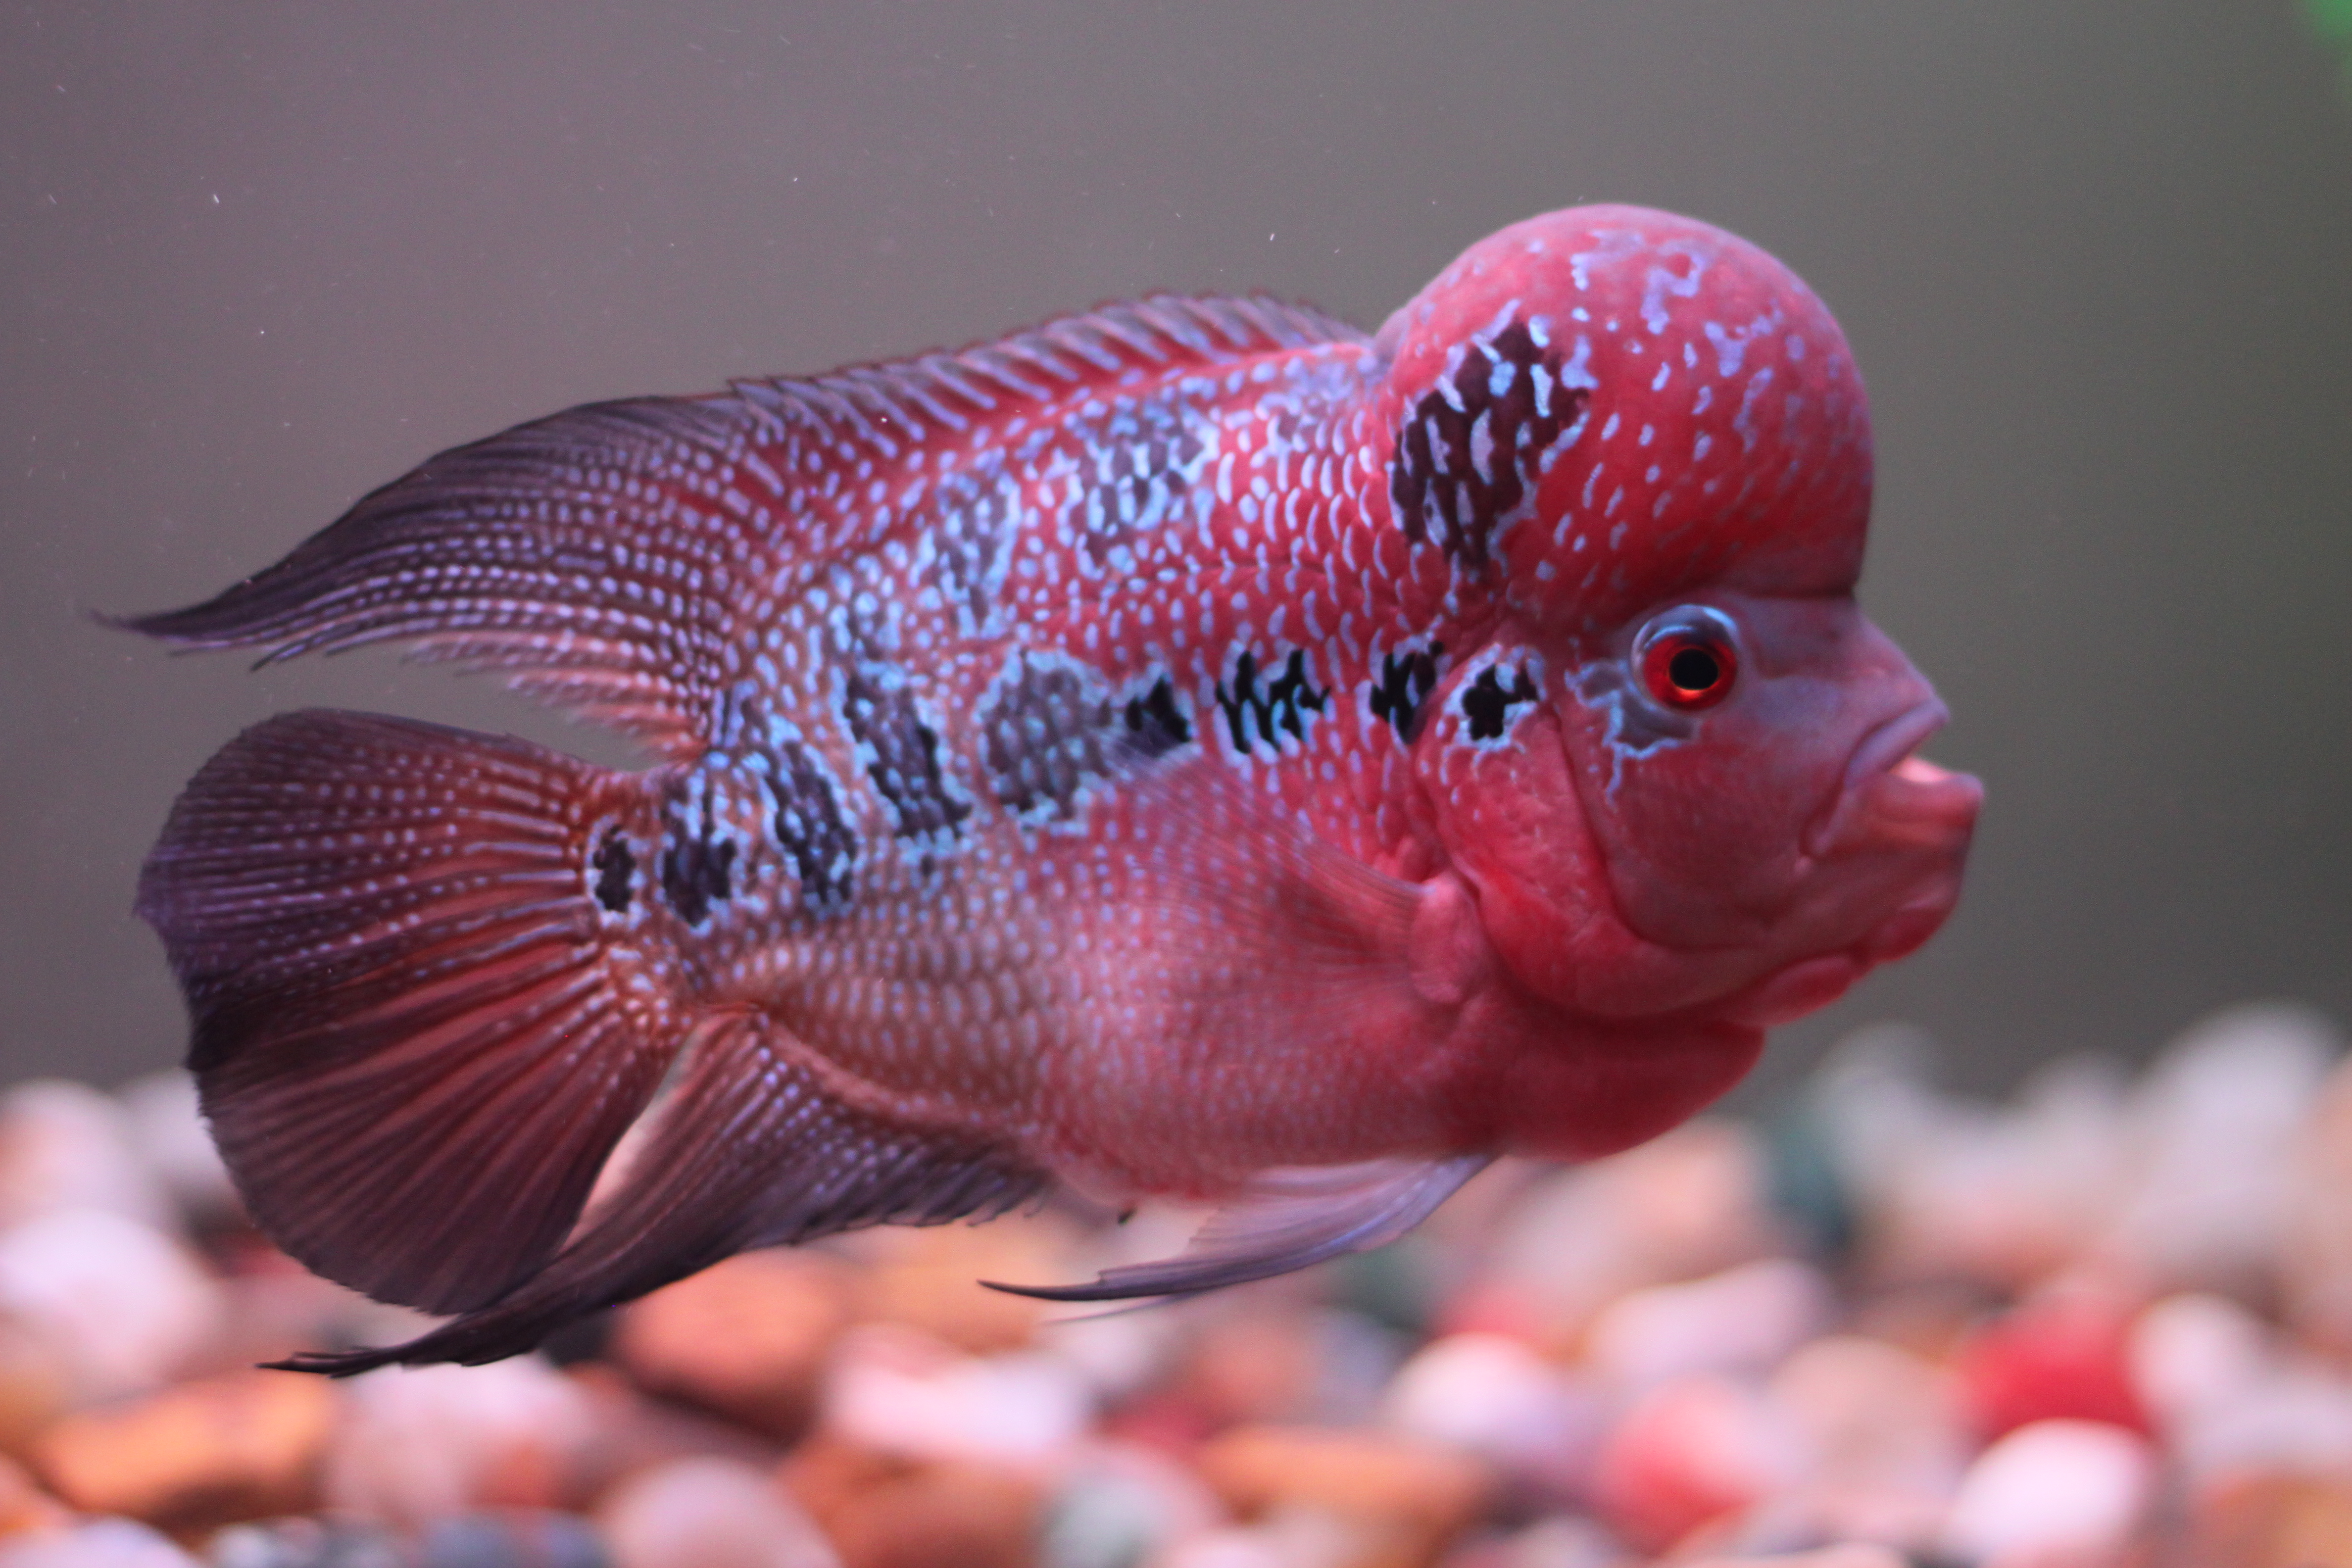 cichlids.com: Flowerhorn Updated Pic 3